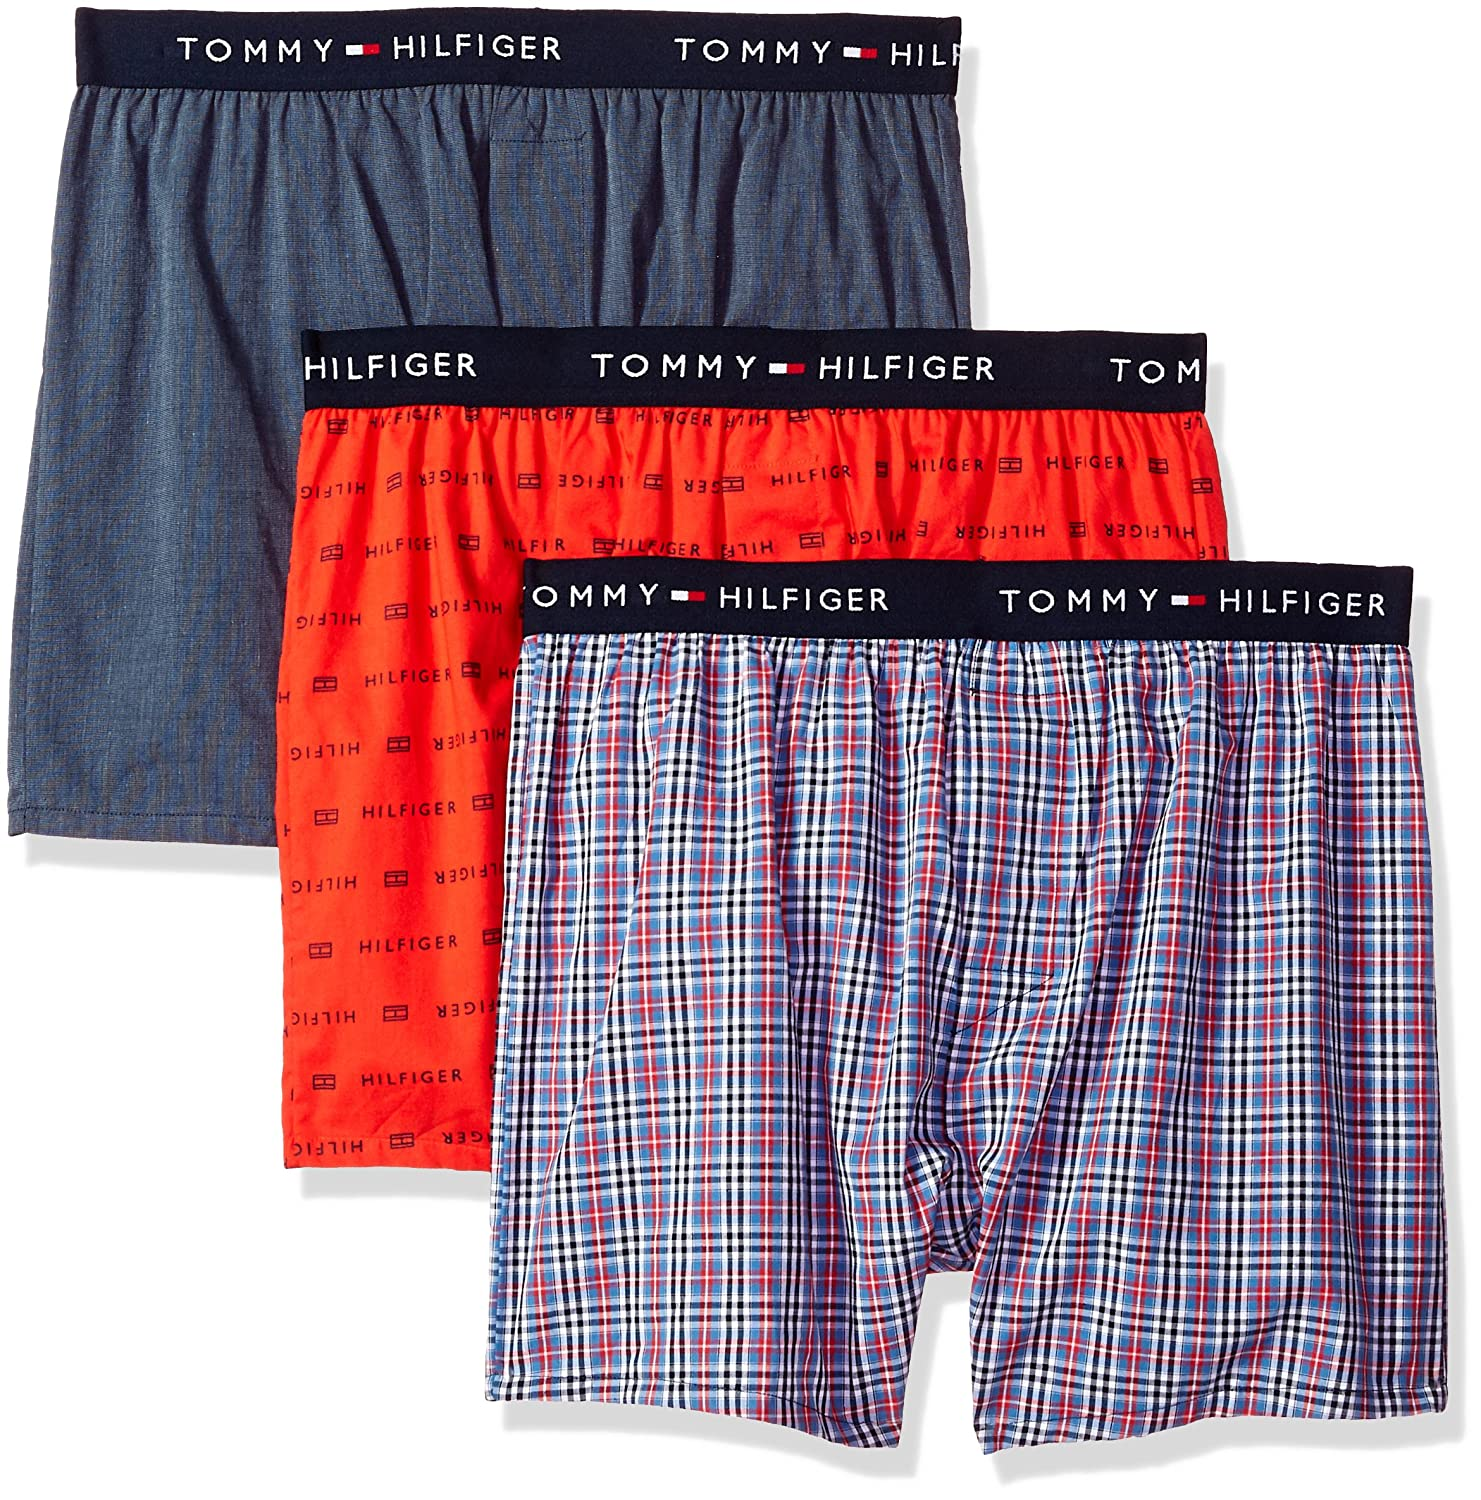 Tommy Hilfiger Men's 3 Pack Cotton Classics Woven Boxers 09TV063